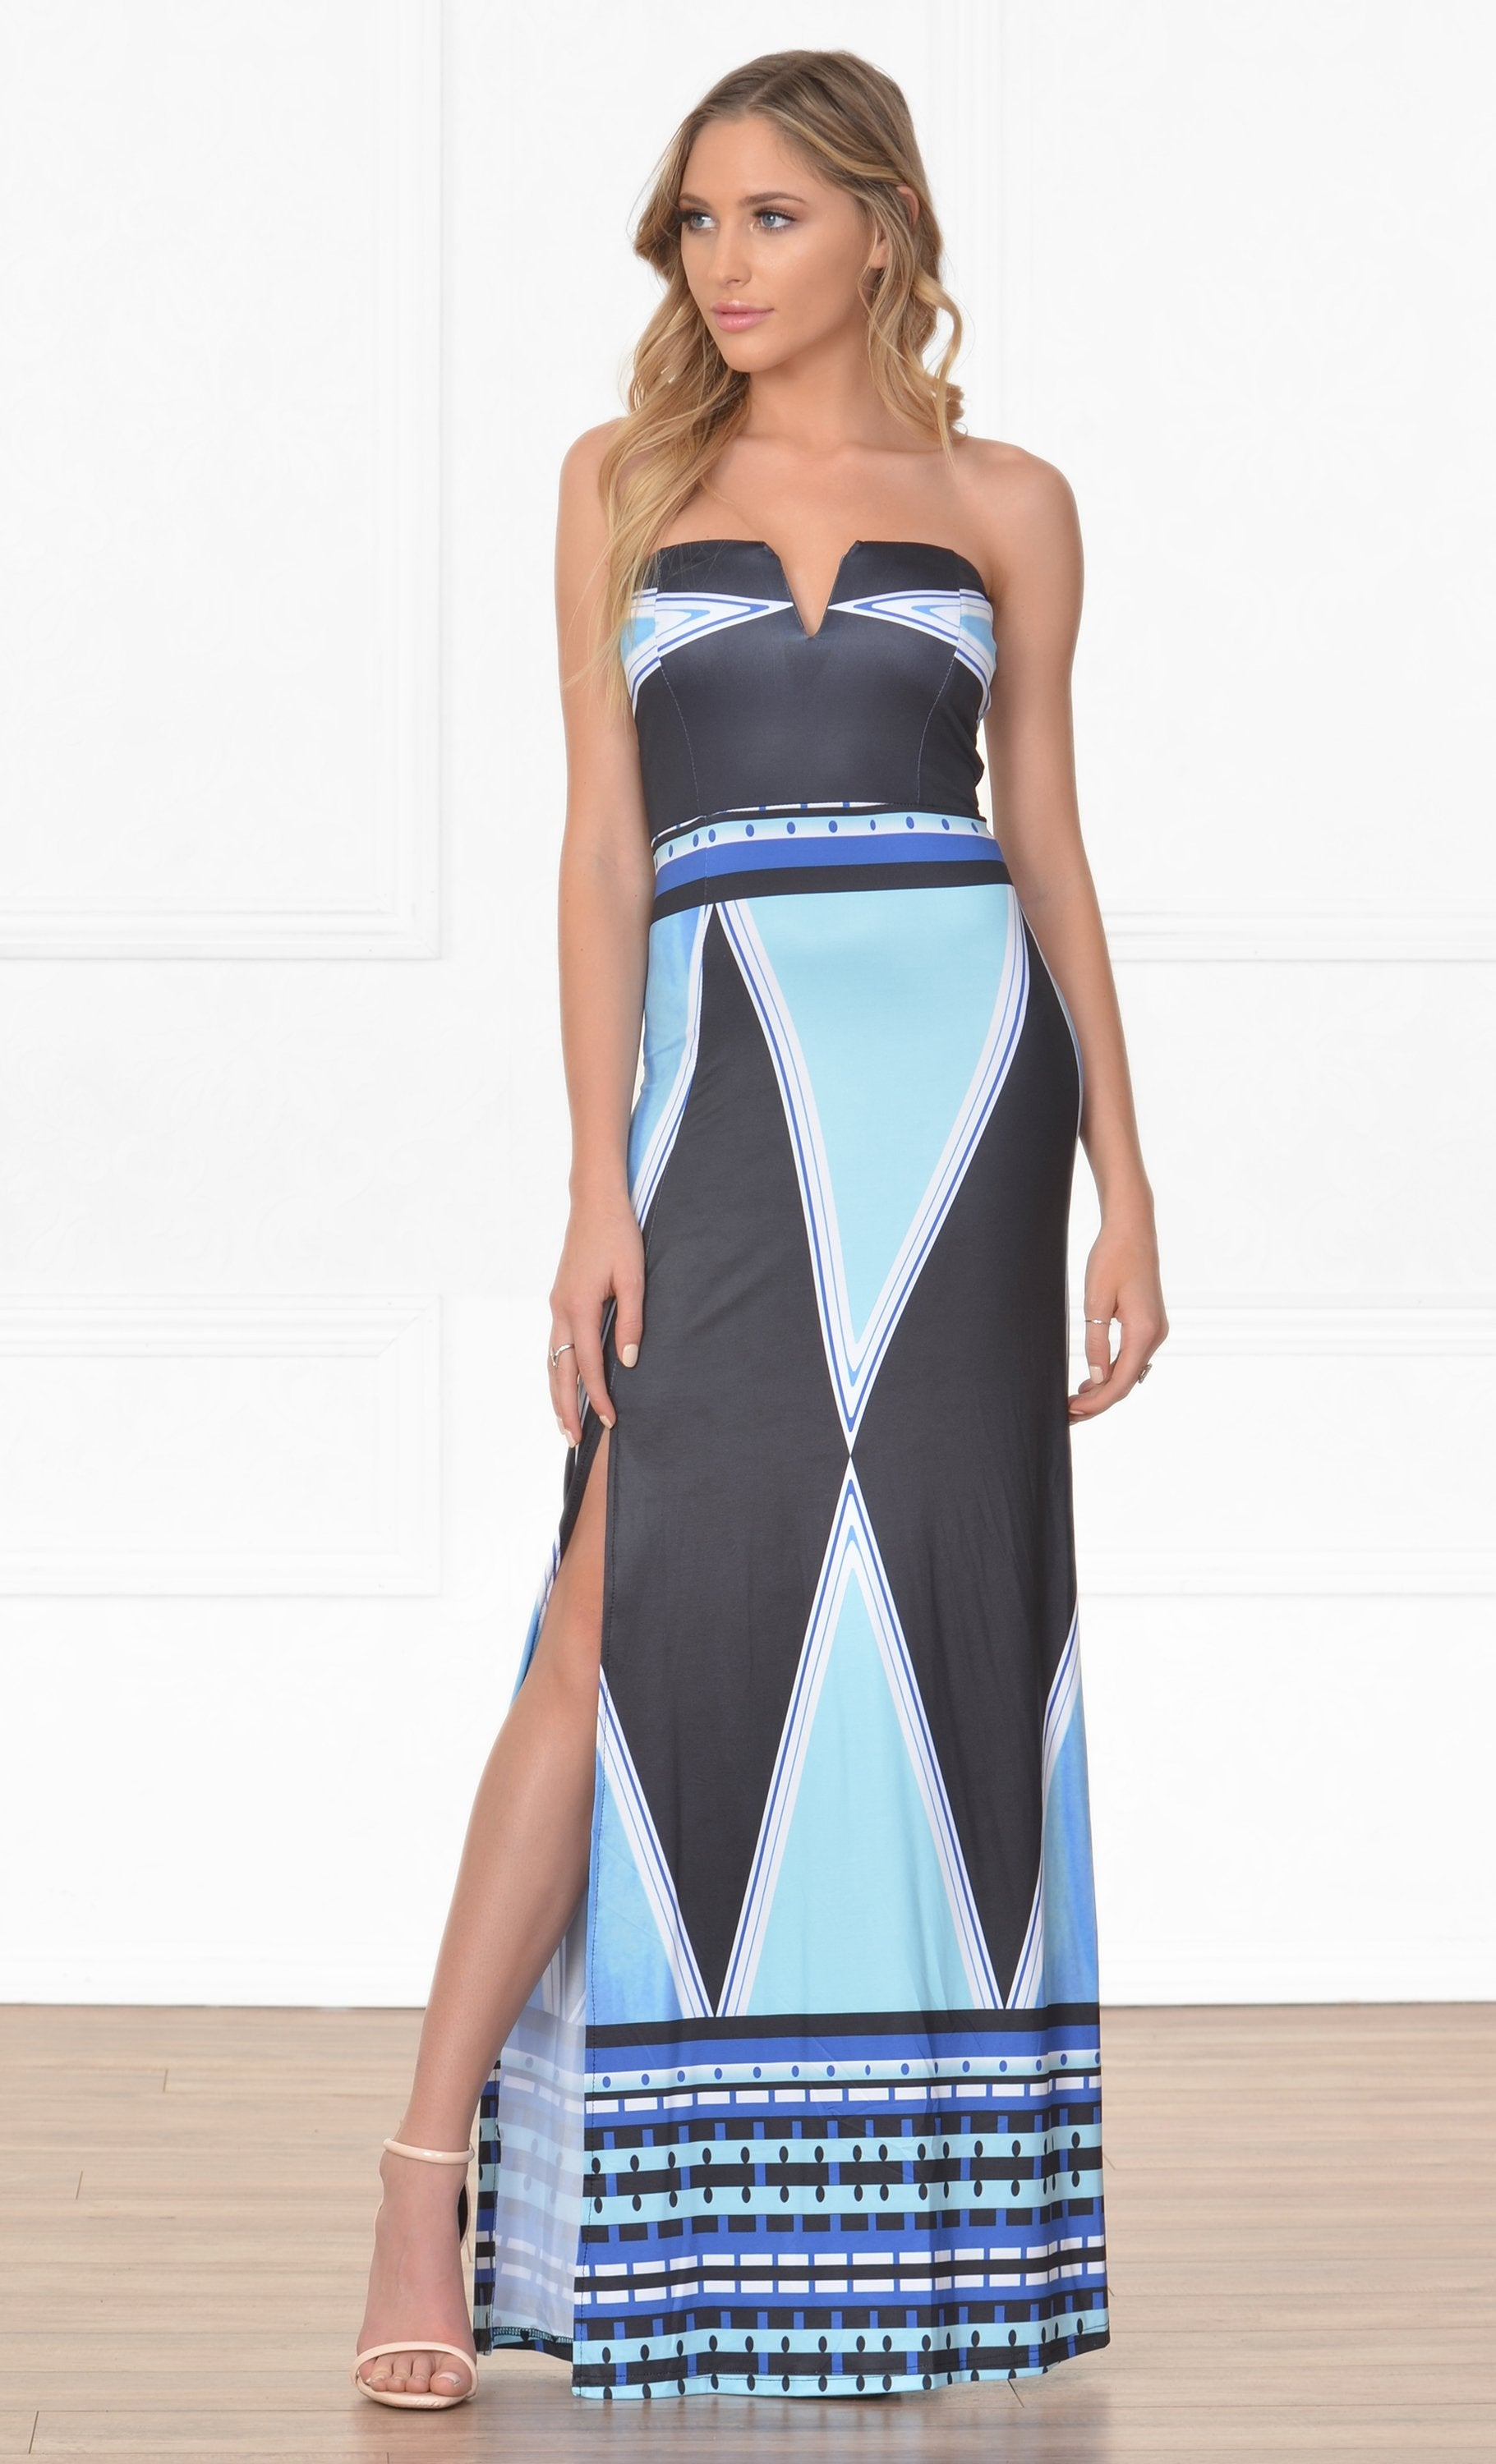 Indie XO Over The Moon Blue White Black Mint Tribal Geometric Strapless V Neck High Slit Casual Maxi Dress